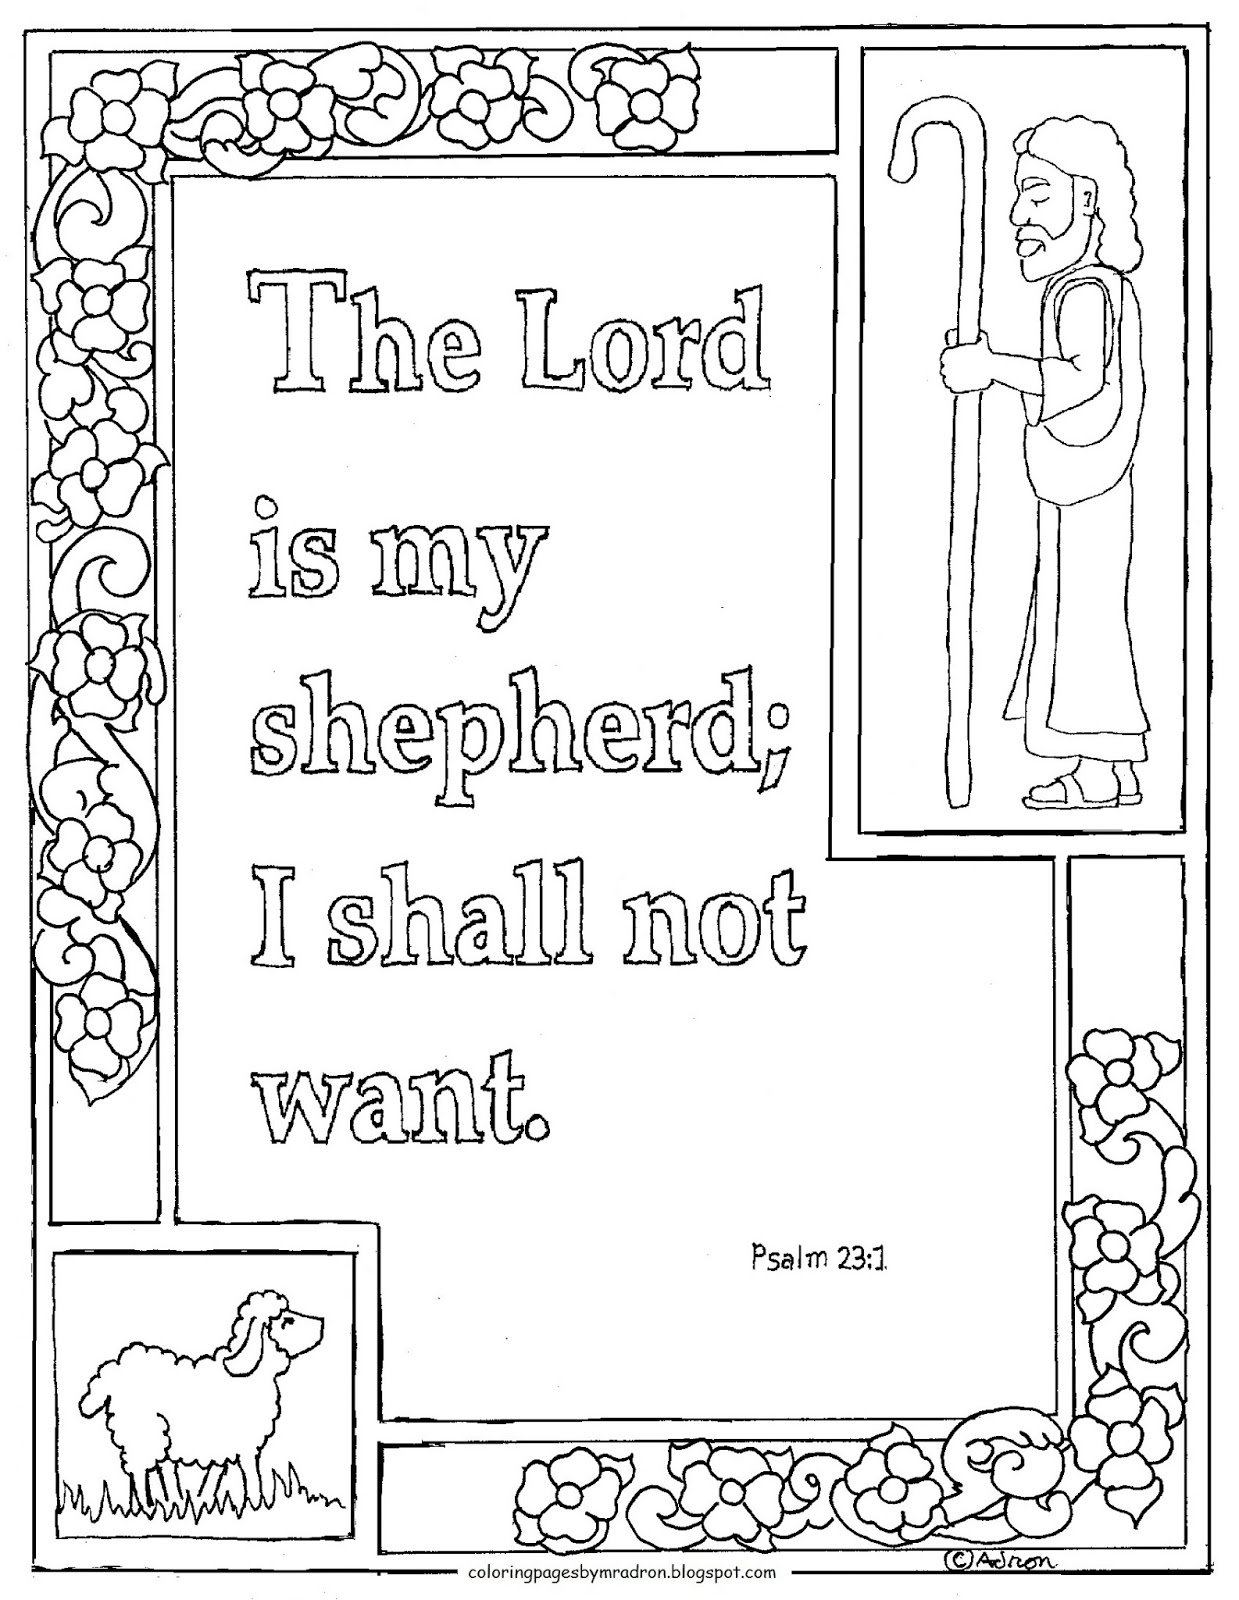 Psalm 23 Coloring Page - Coloring Pages for Kids by Mr Adron Printable Psalm 23 1